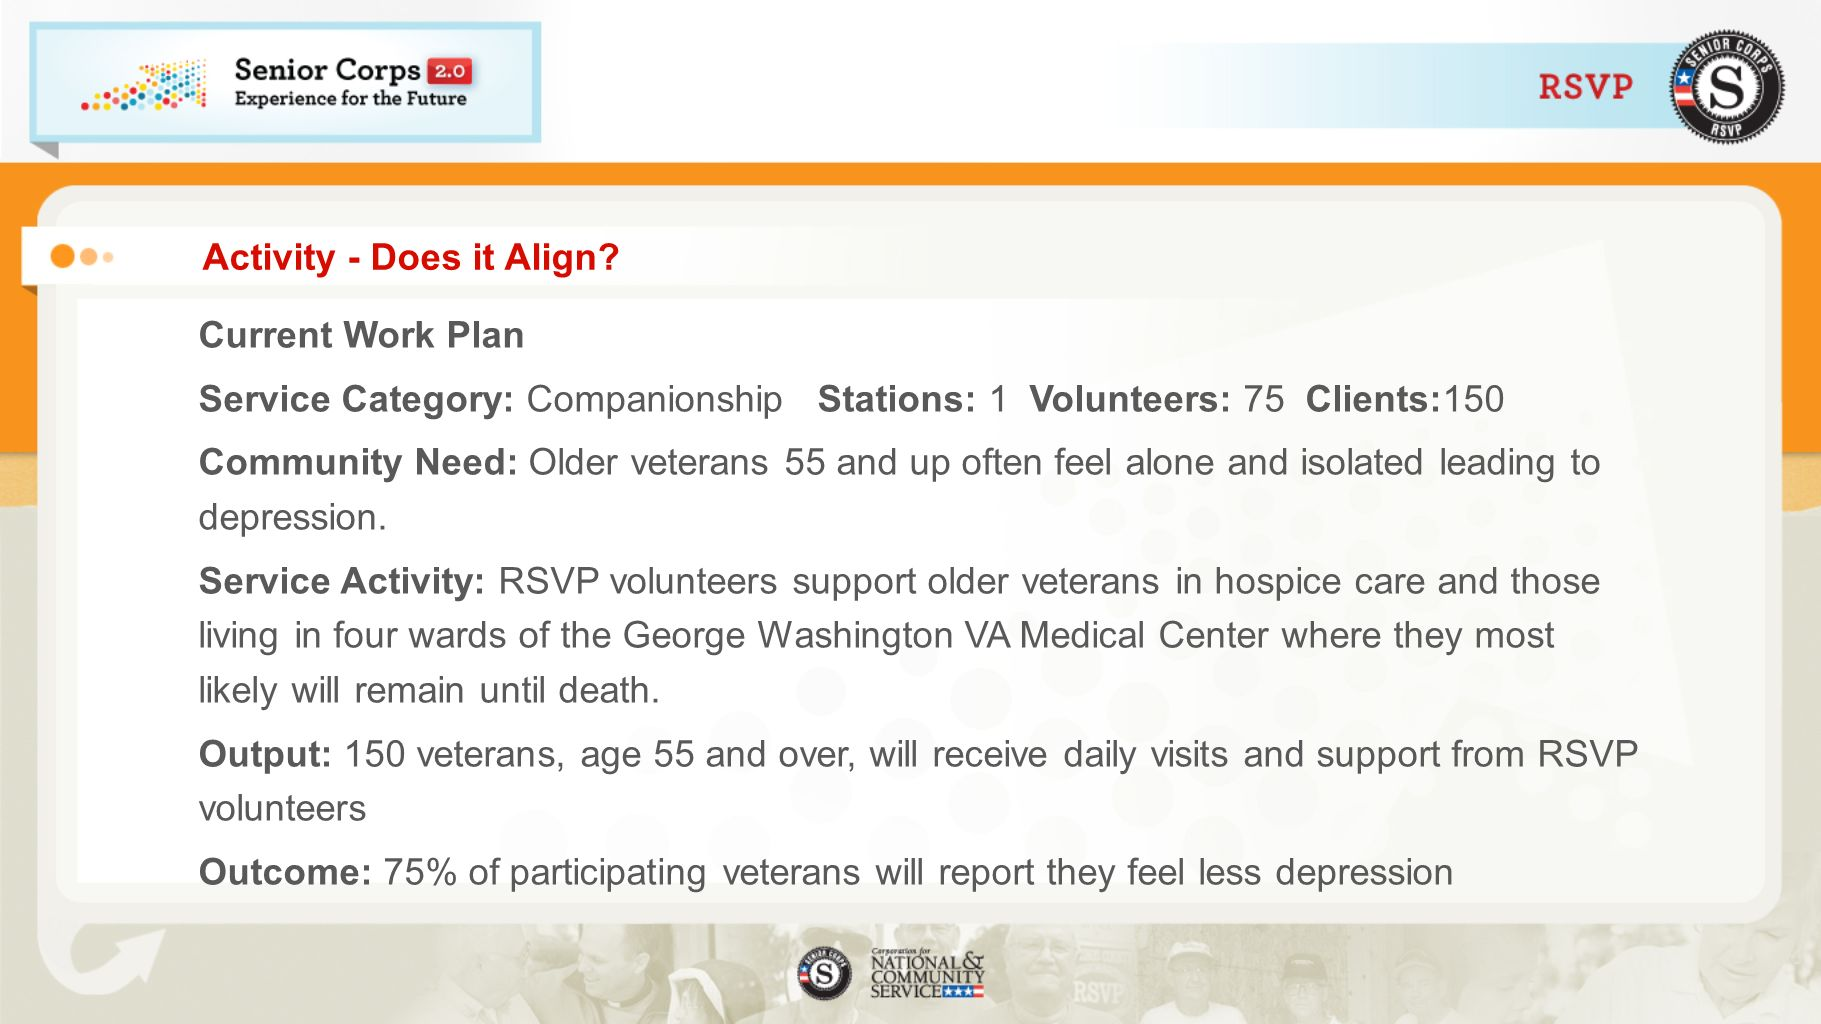 Activity - Does it Align? Current Work Plan Service Category: Companionship Stations: 1 Volunteers: 75 Clients:150 Community Need: Older veterans 55 a